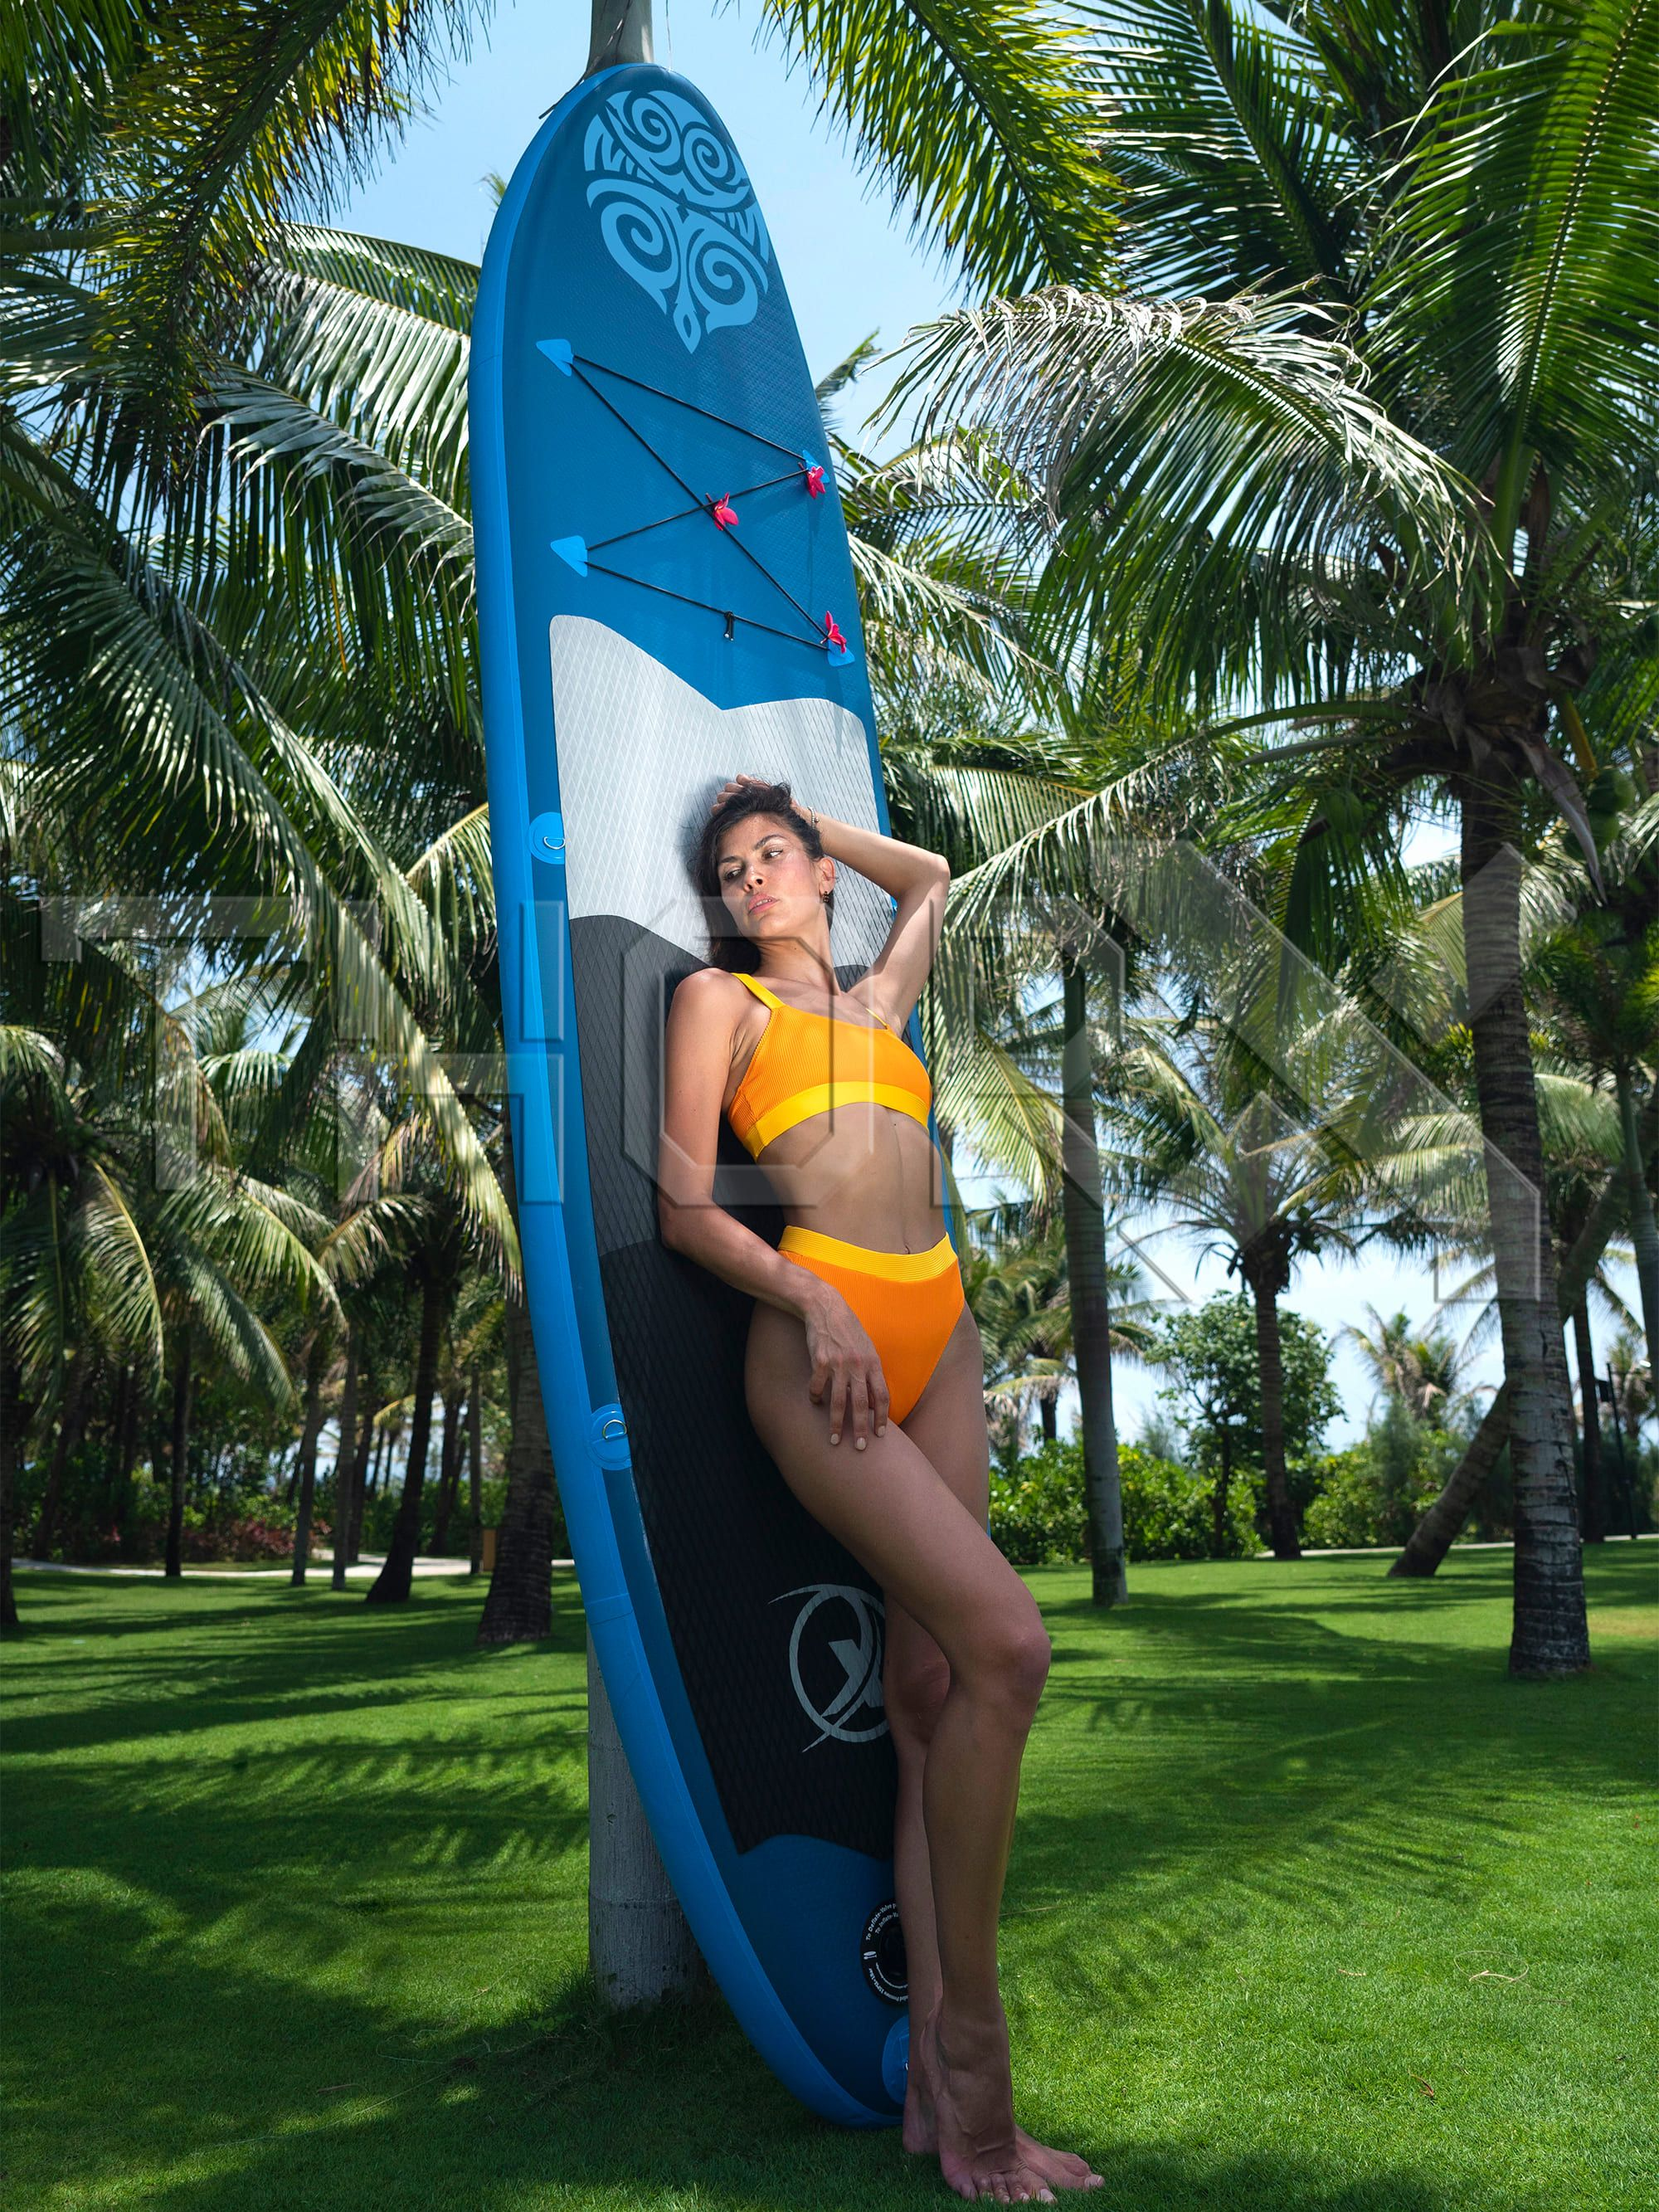 SUP330 Stand up Paddle Board 330x76x15cm, blue - SUP, surfboard, surf board, accessories, fishing